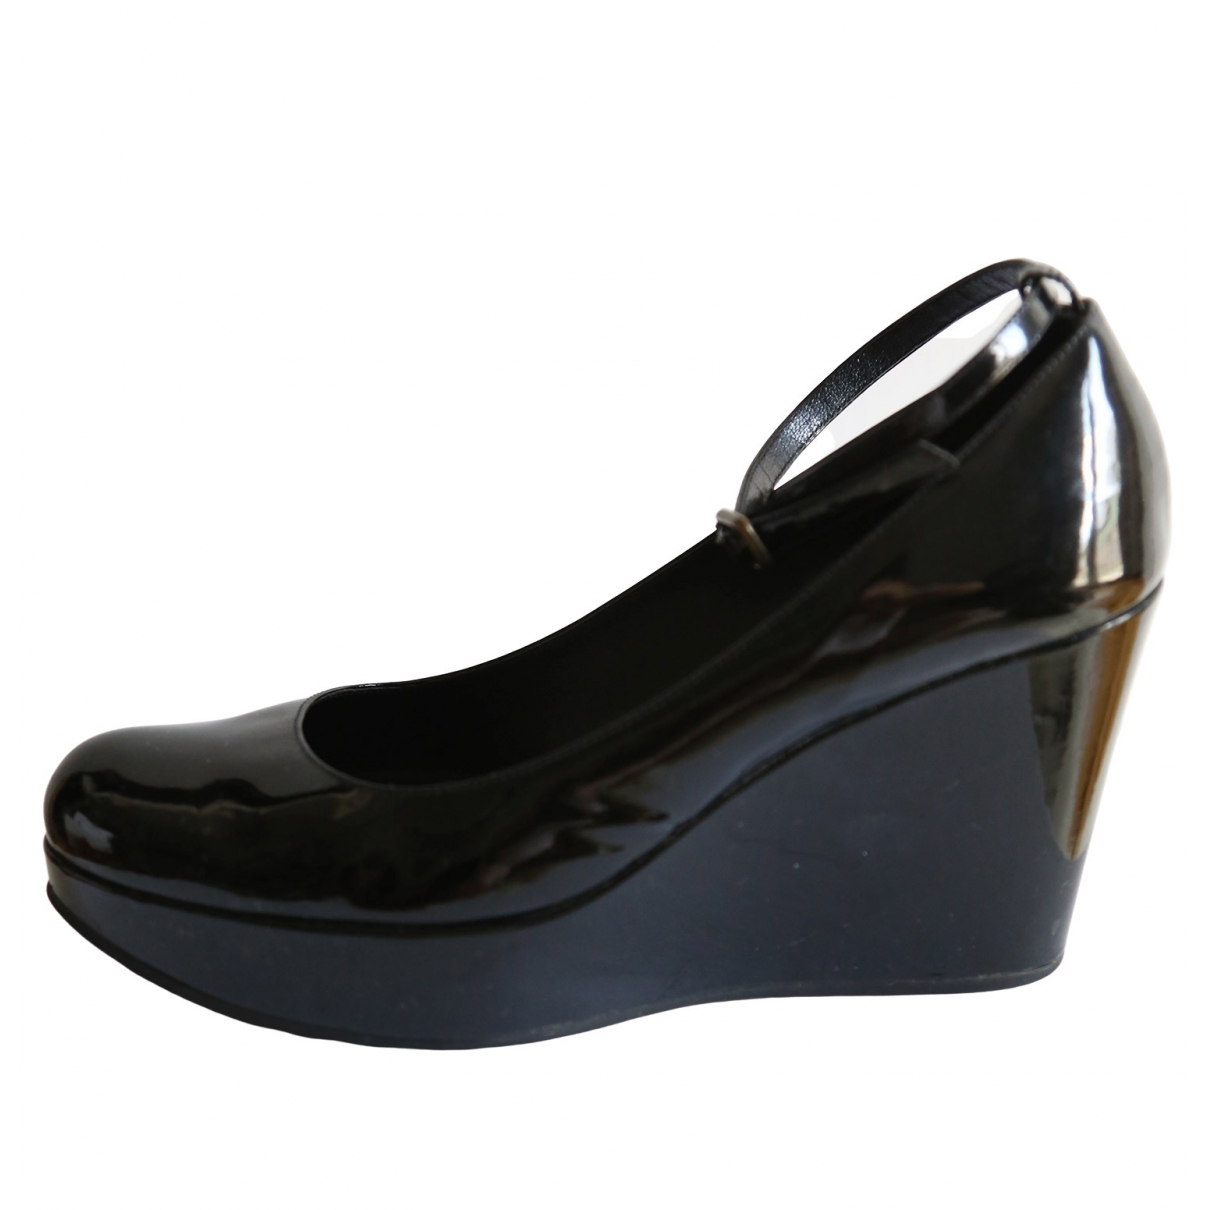 Marc By Marc Jacobs \N Black Patent leather Sandals for Women 38 EU